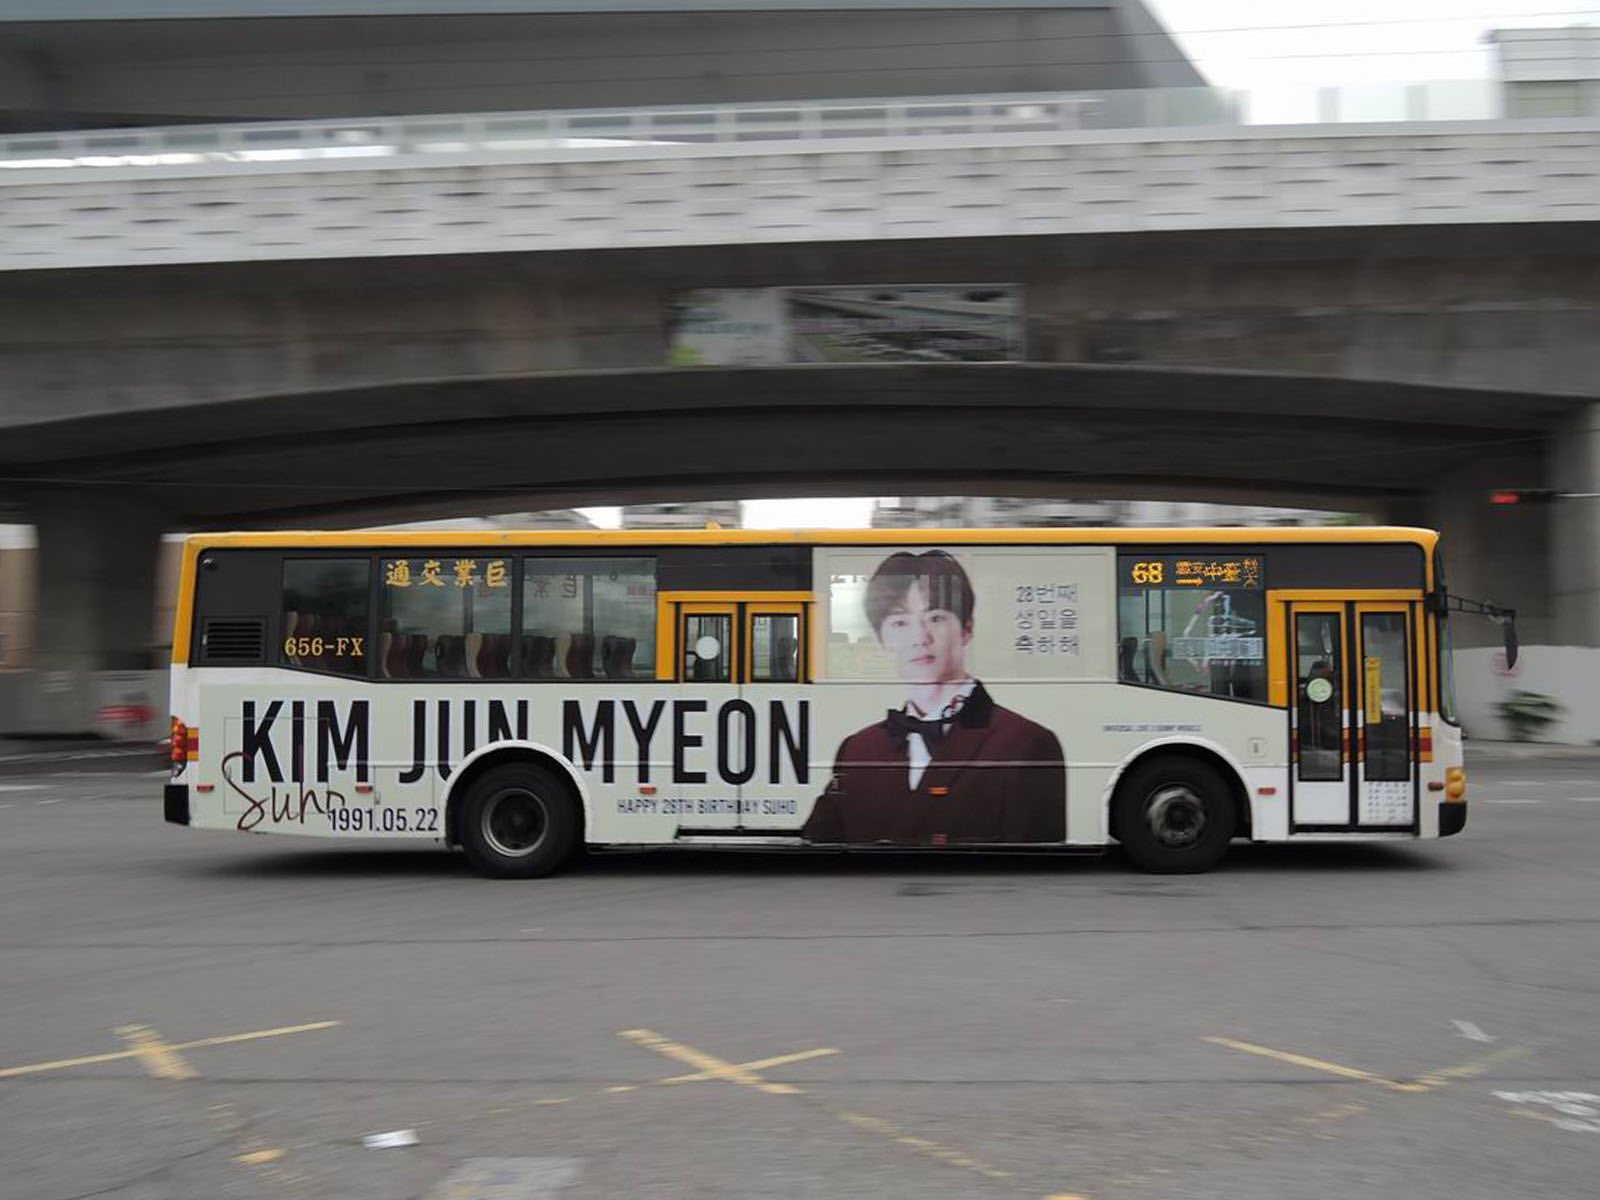 #IseeSUHOinTaiwan #EXO #SUHO bus is here!!!! Please celebrate SUHO's birthday in #Taiwan �� #엑소 #수호 #HappySUHODay https://t.co/QlGRDHqSb5